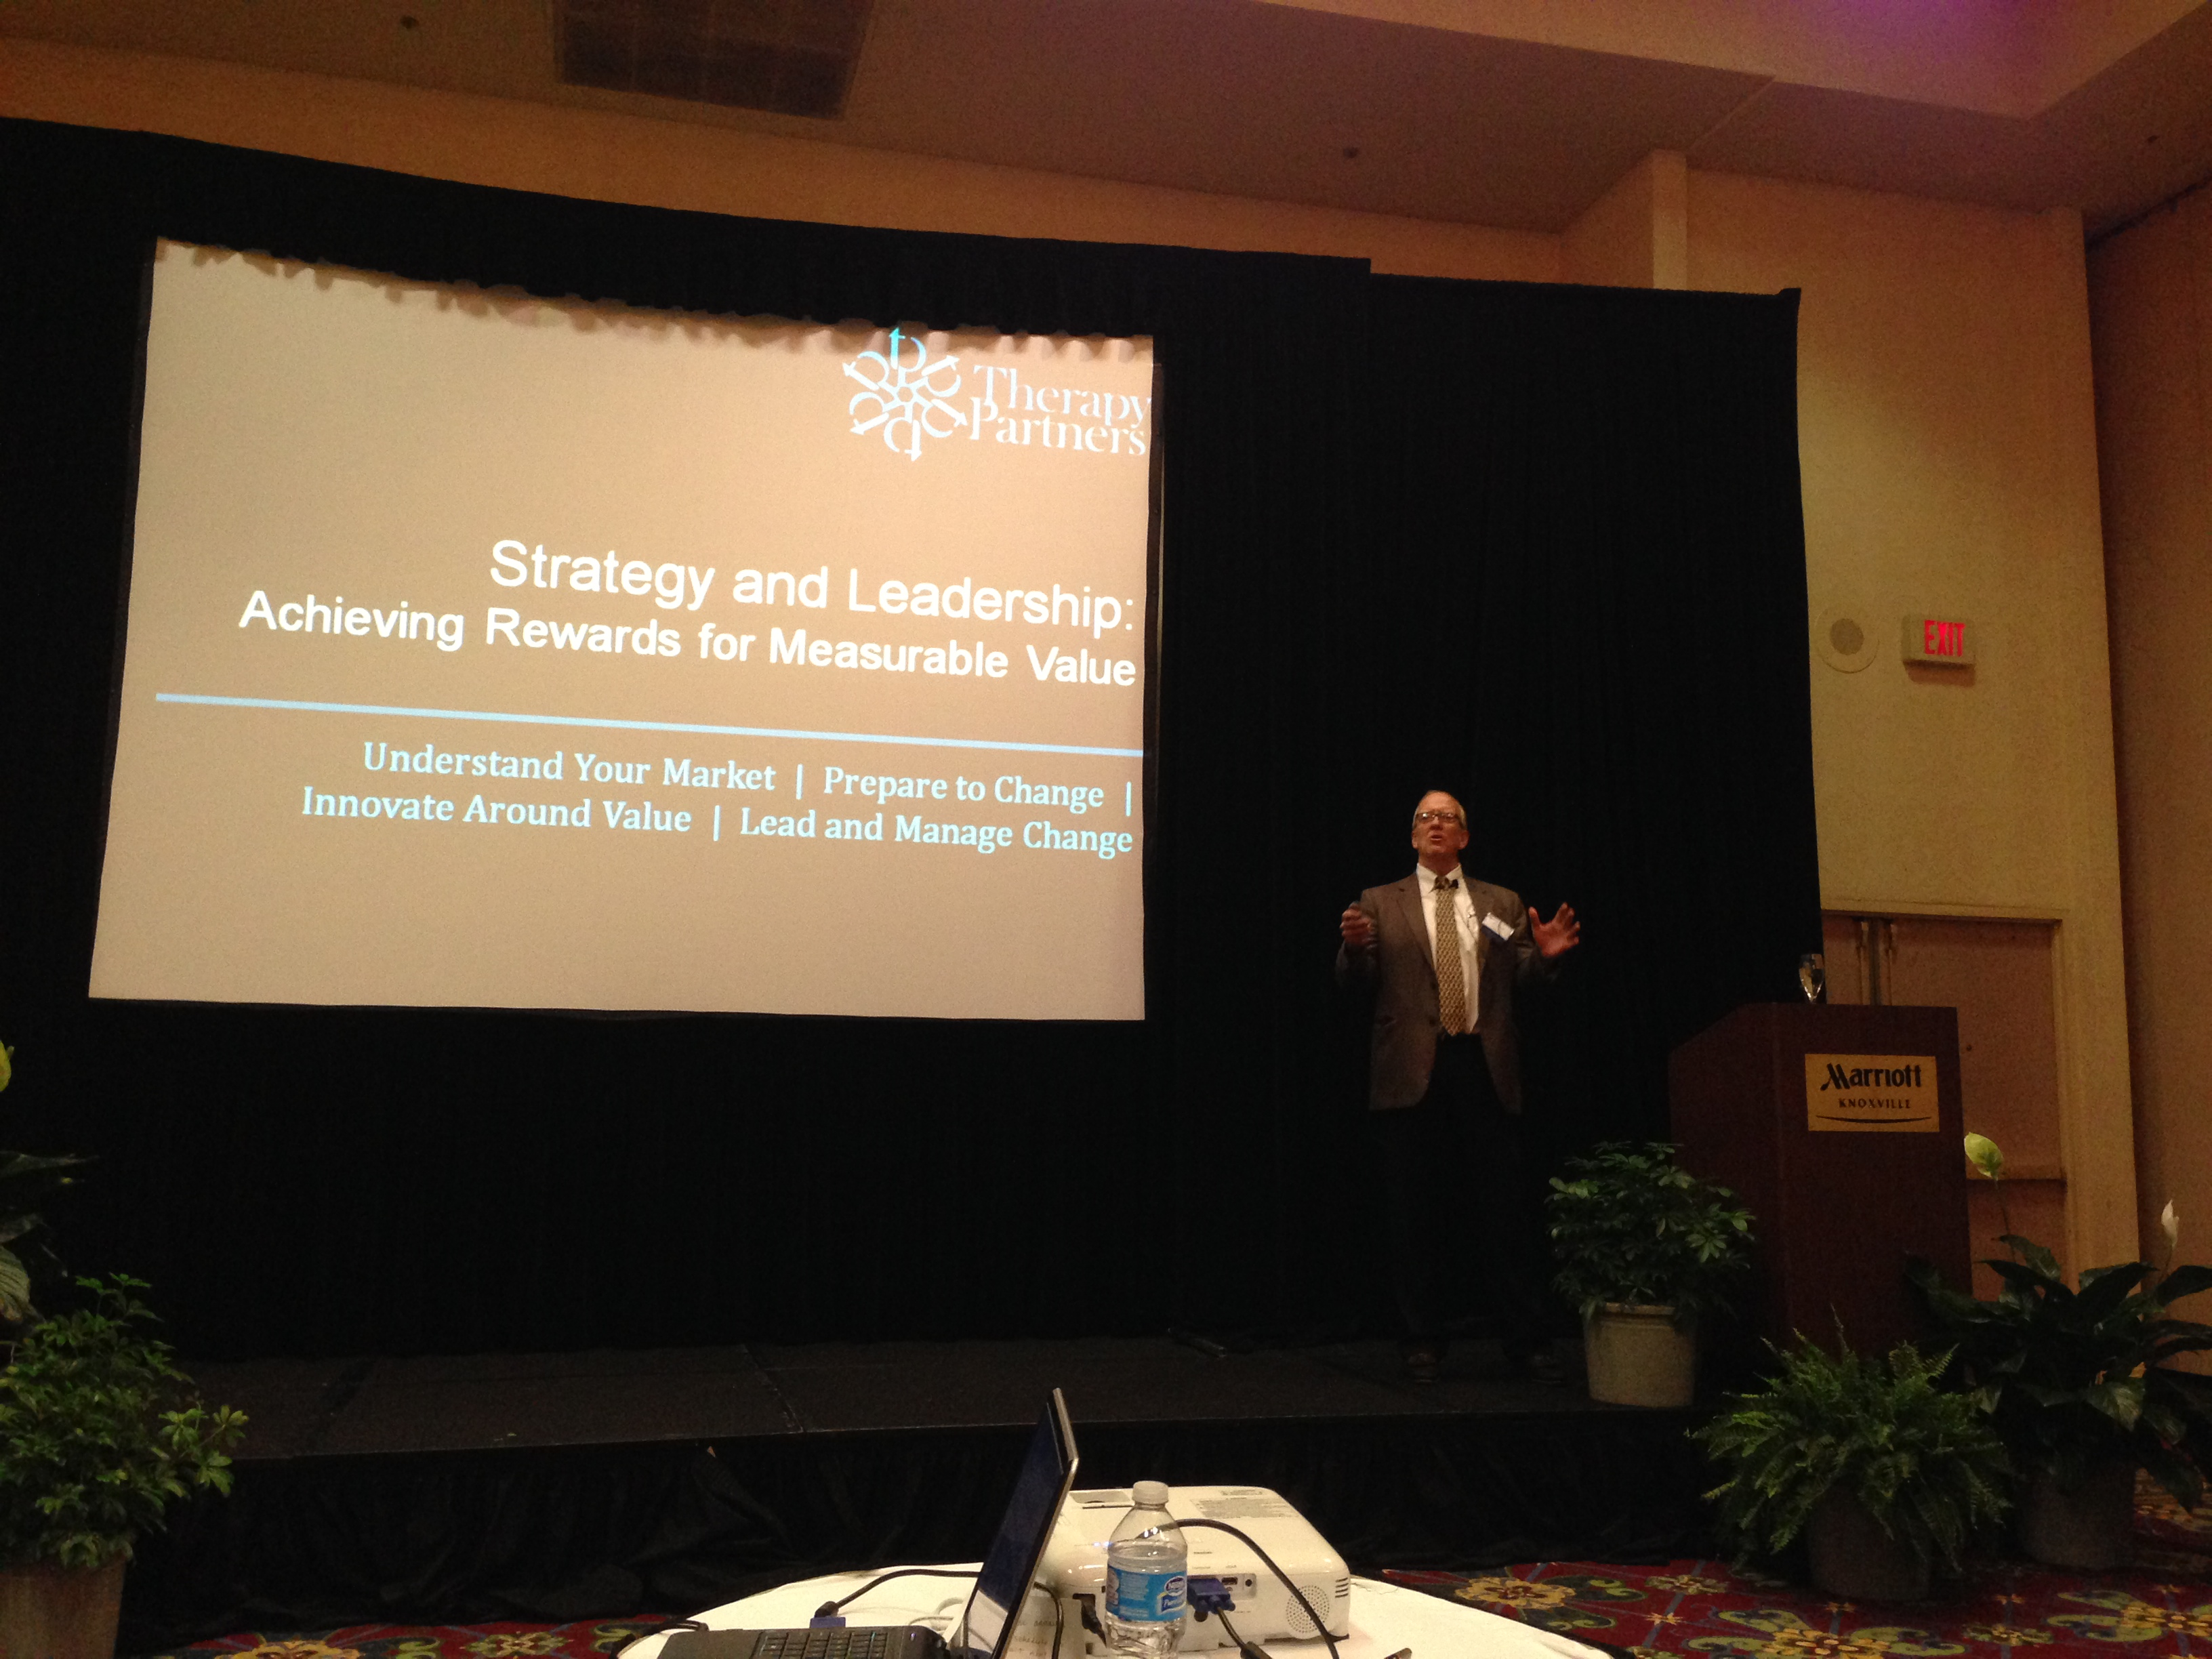 FOTO Outcomes Conference in Knoxville - Jim Hoyme speaking